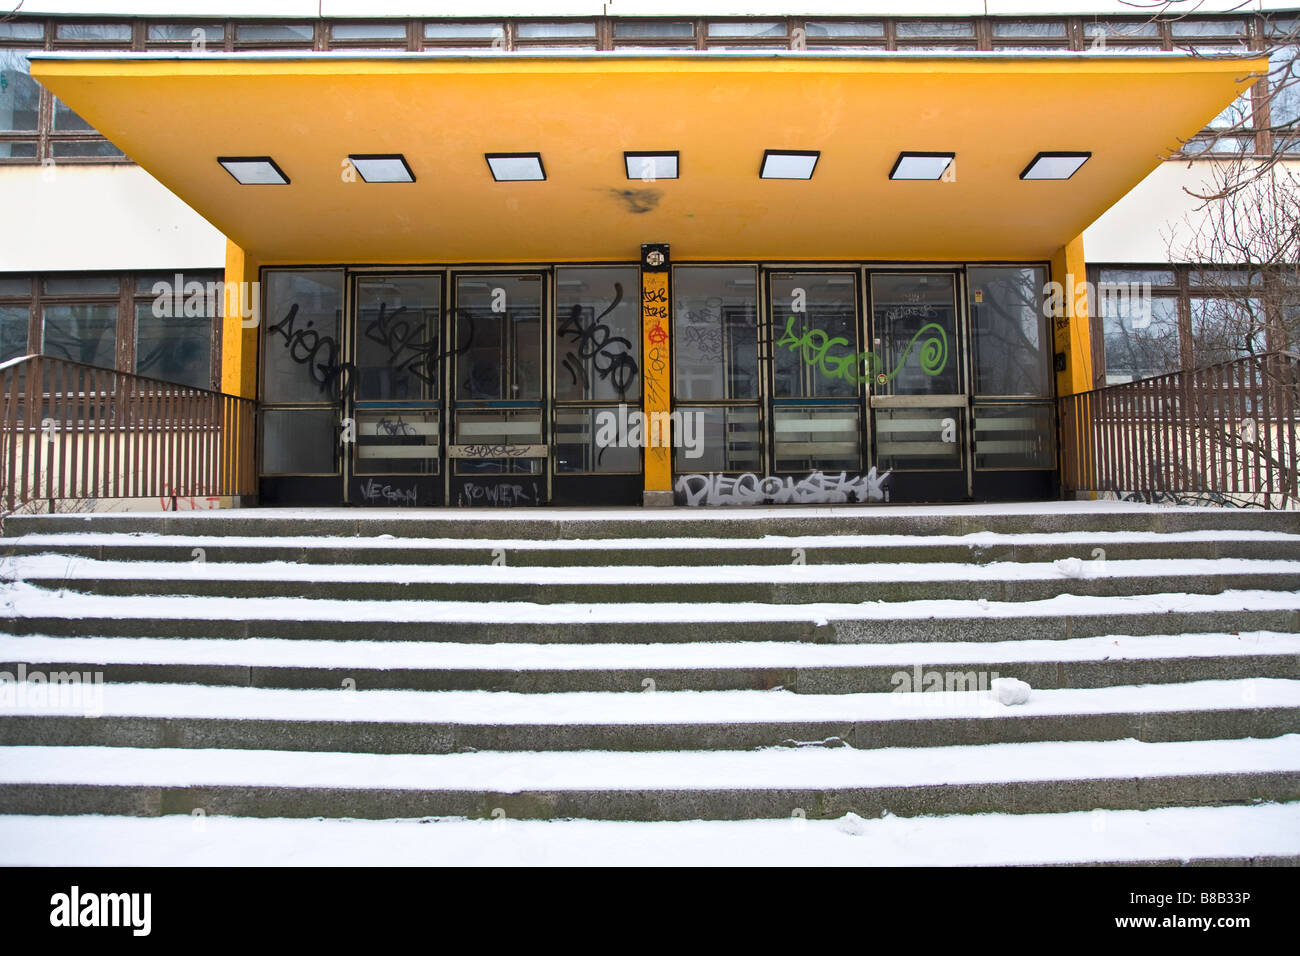 school steps covered in snow - Stock Image